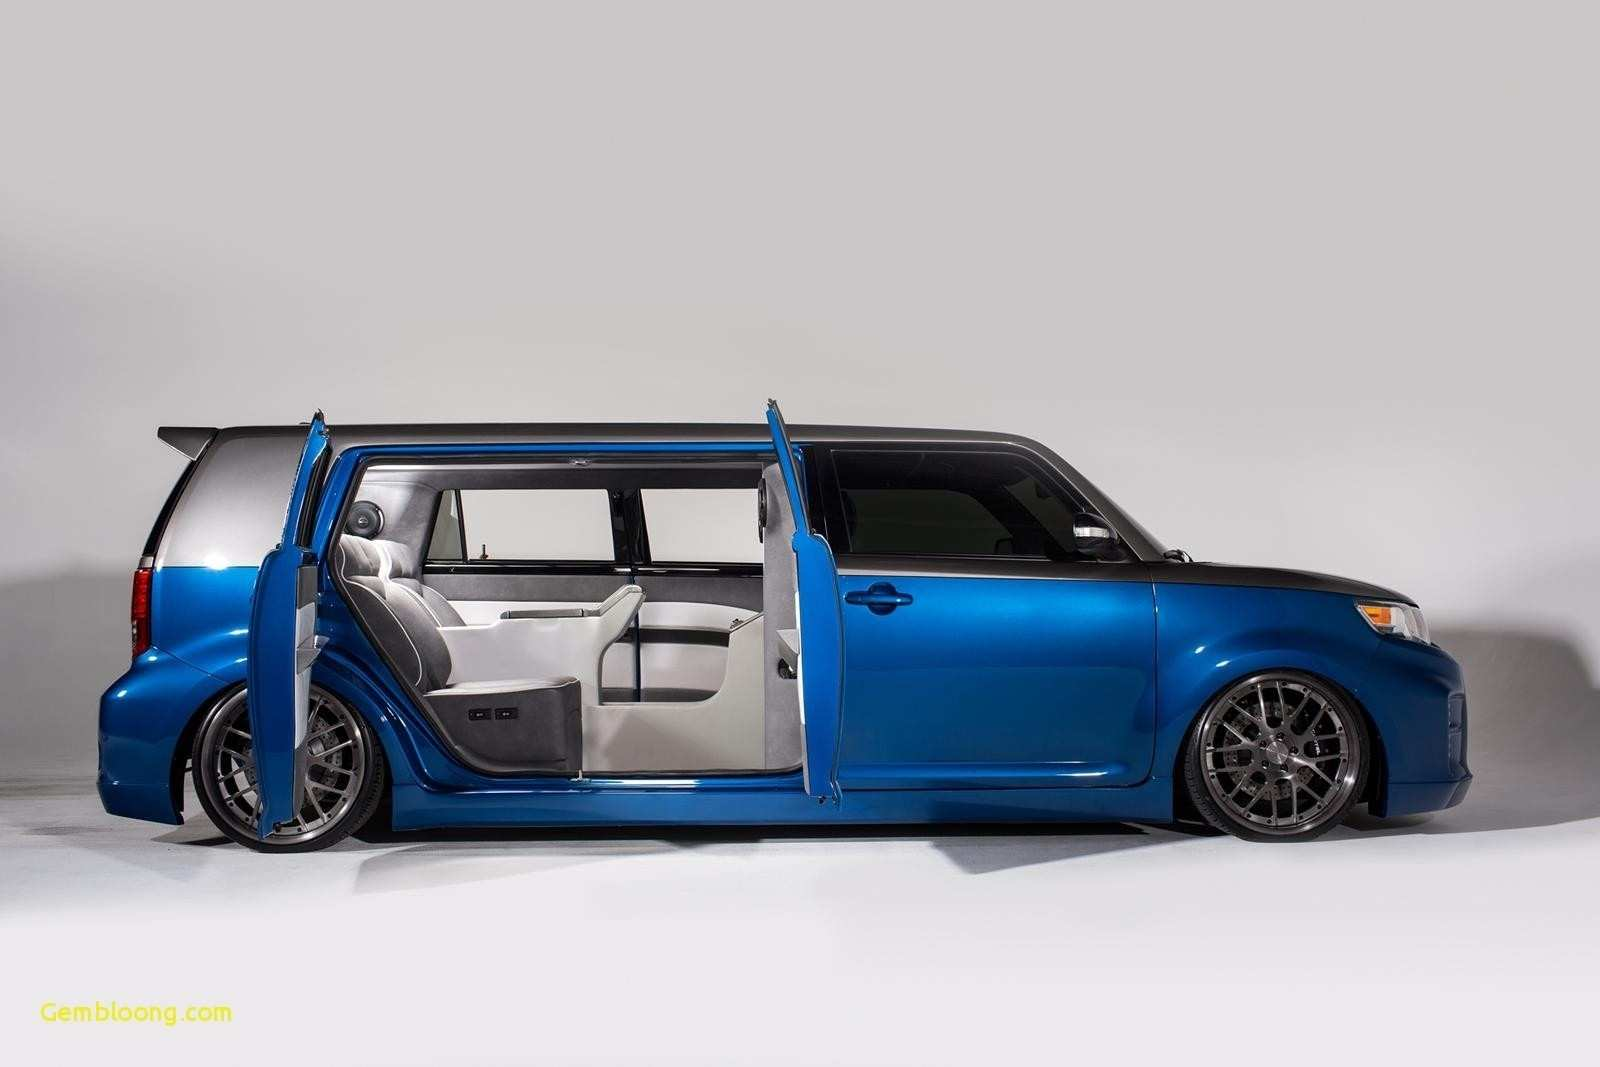 67 Best Review 2019 Scion Xb Exterior and Interior with 2019 Scion Xb